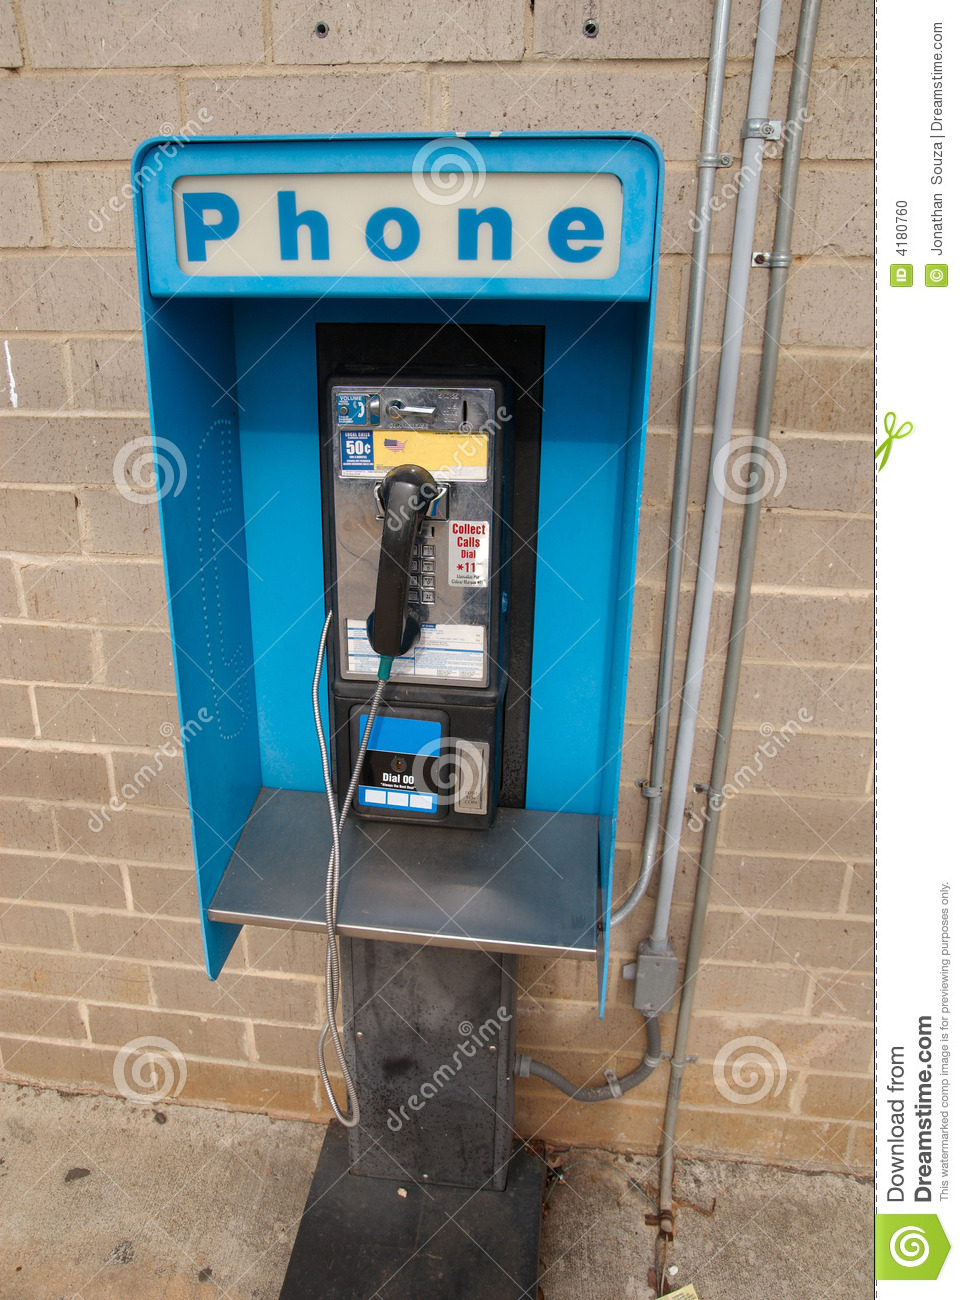 Stock Photo Pay Phone Image4180760 moreover Royalty Free Stock Image Bowl Breakfast Cereal Loops Image26830056 further Bulgari Announces New Dubai Hotel  ing In 2017 besides Stock Photography Map European Union Eu Flag Image8573352 furthermore Stock Image Italian Famous Statues Monuments Small People Places Image32486691. on italian architecture plans